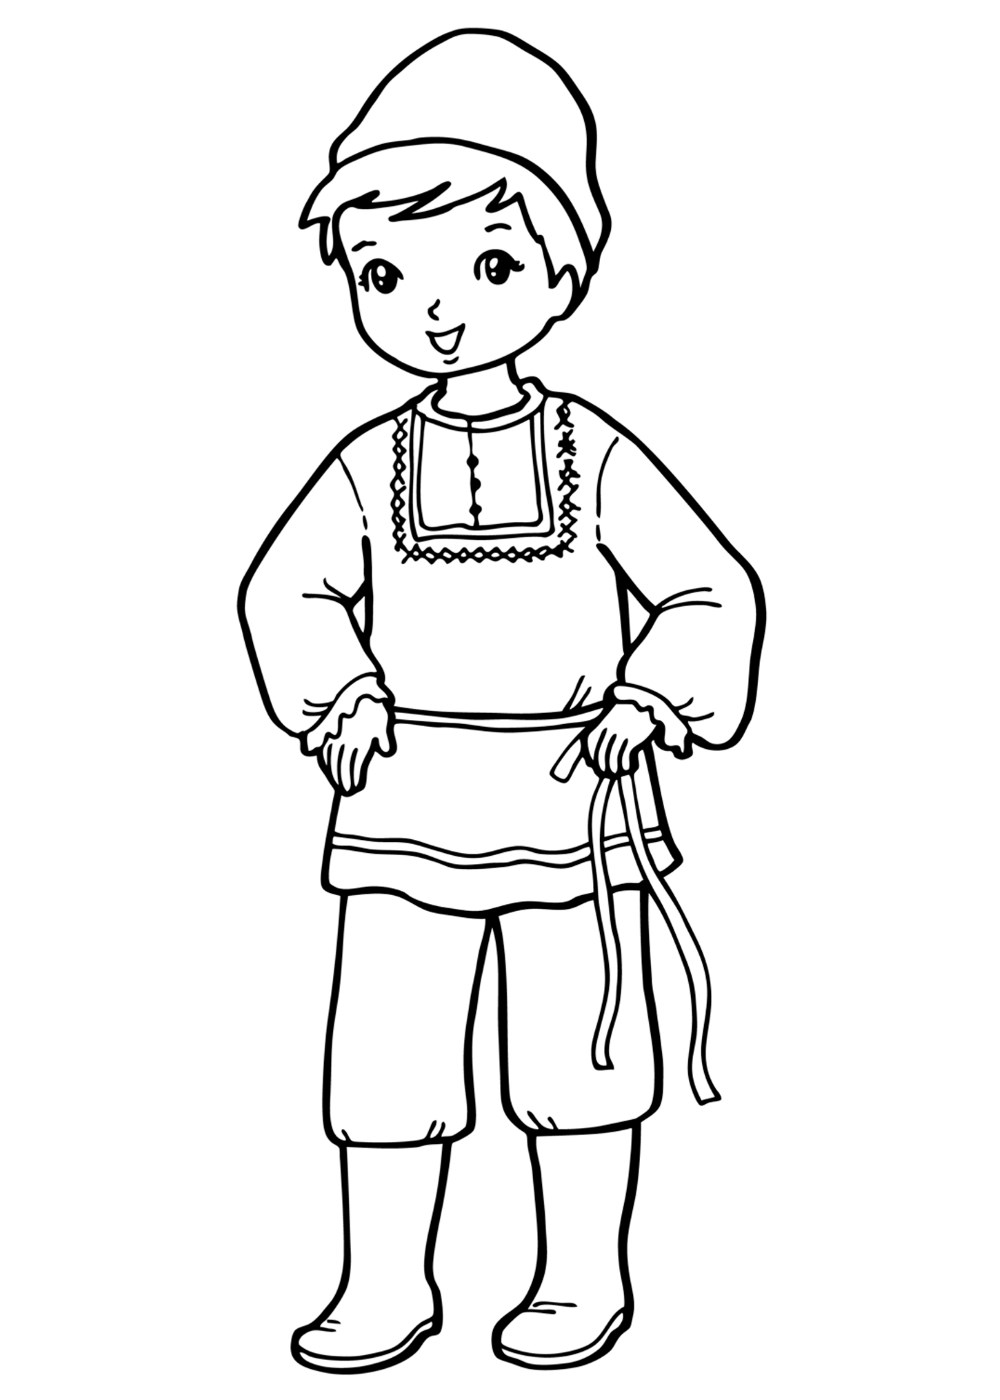 coloring sheet boy coloring page the boy in national costume coloring boy sheet